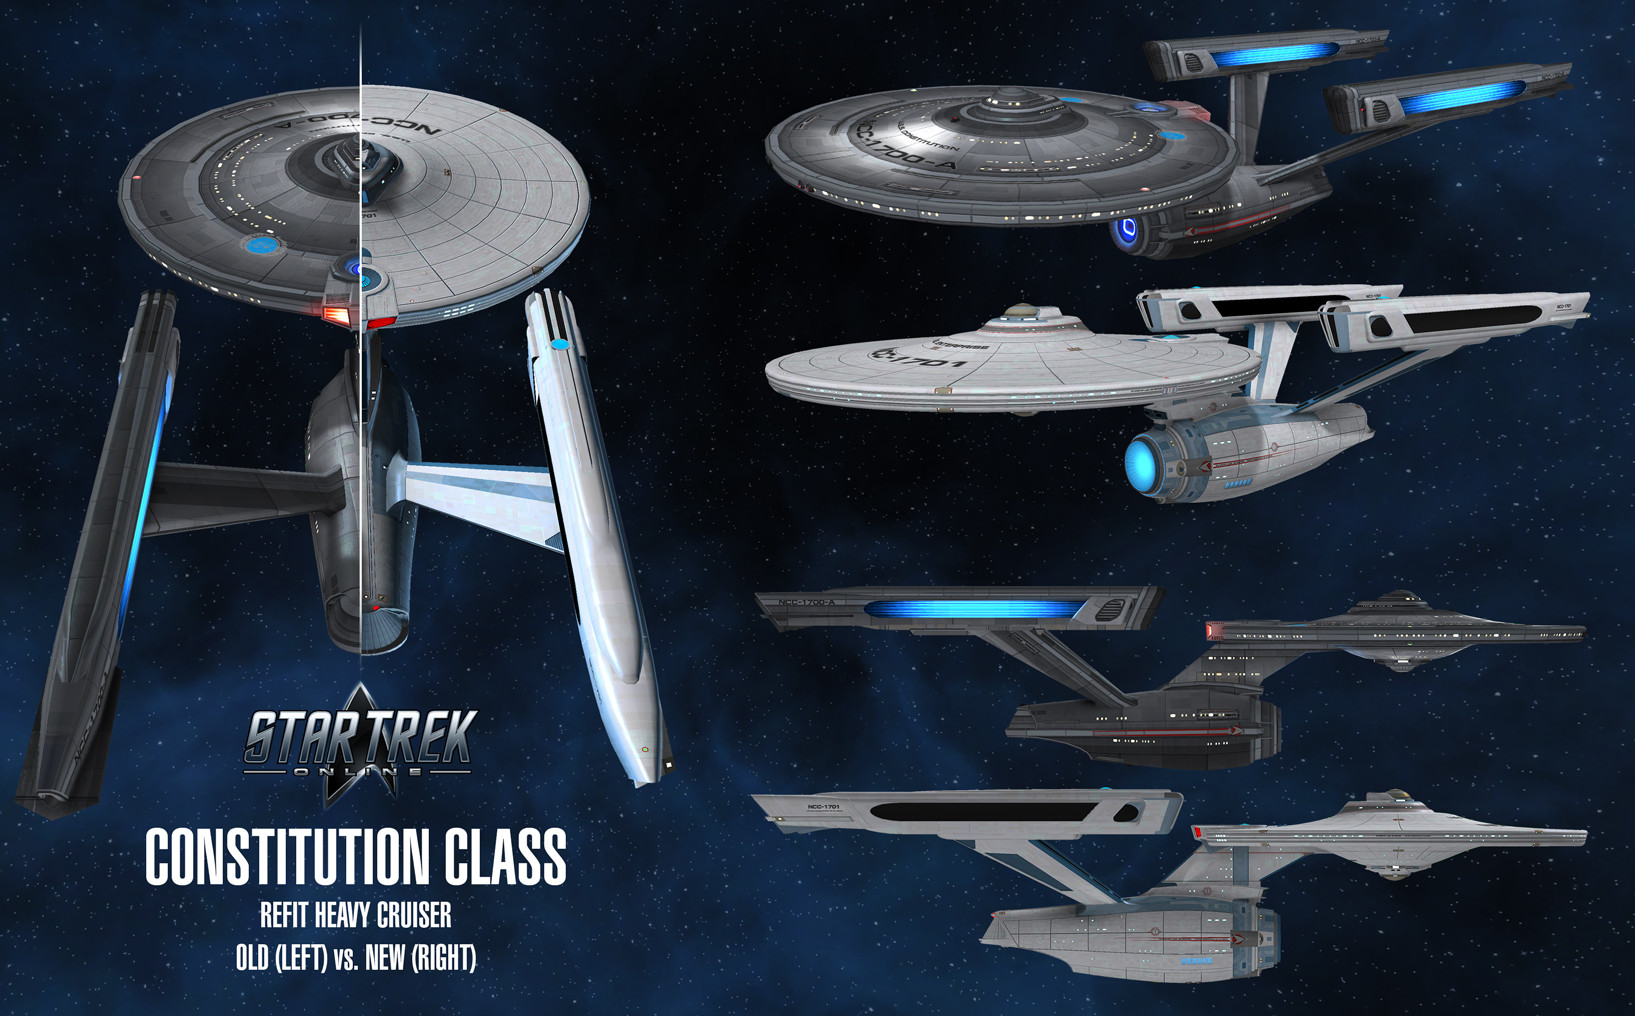 Before and after comparison of the original STO model and the new one.